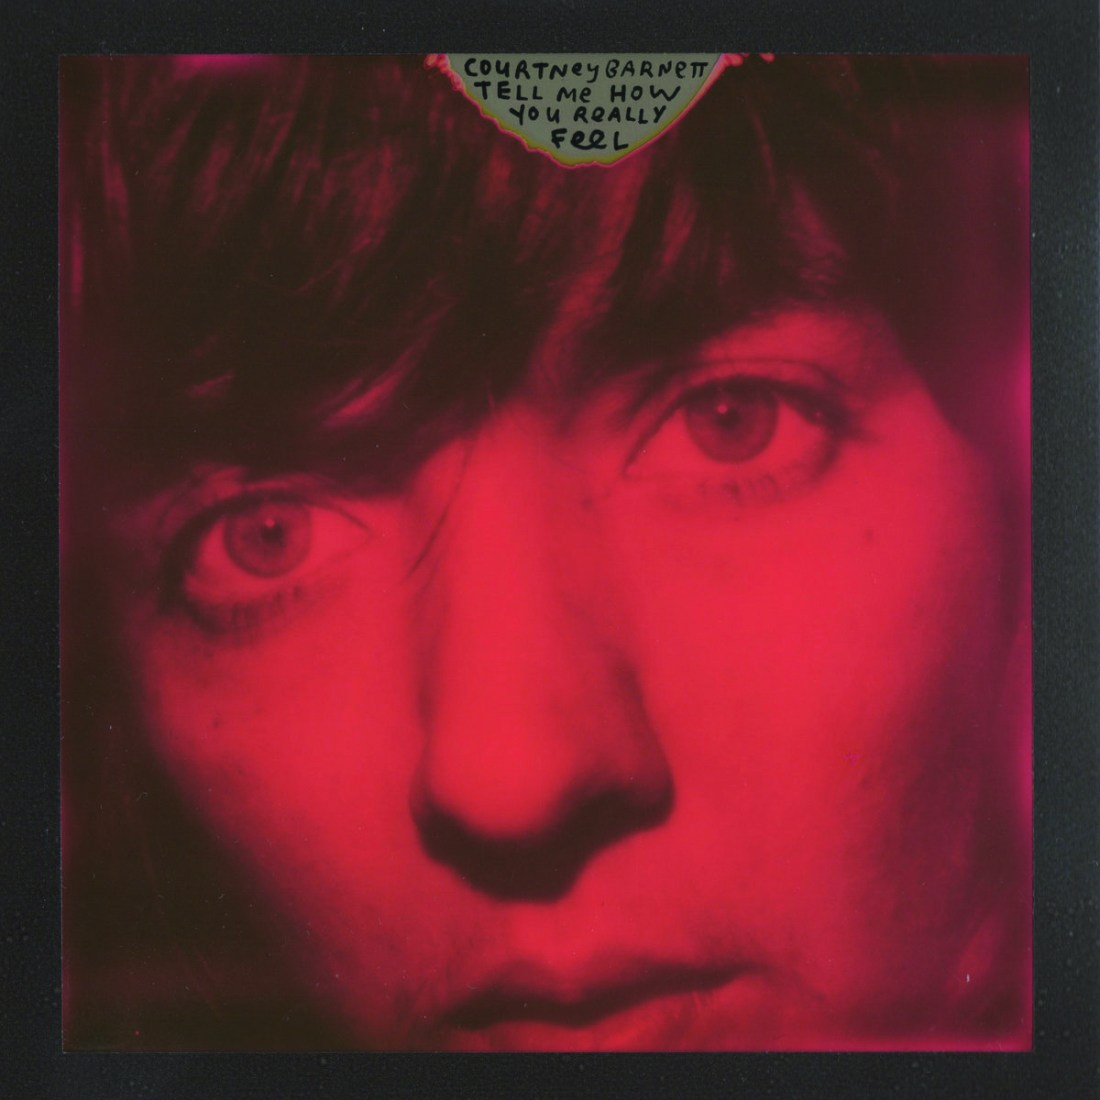 Talking Shop: Eel Pie Records, Twickenham - Courtney Barnett